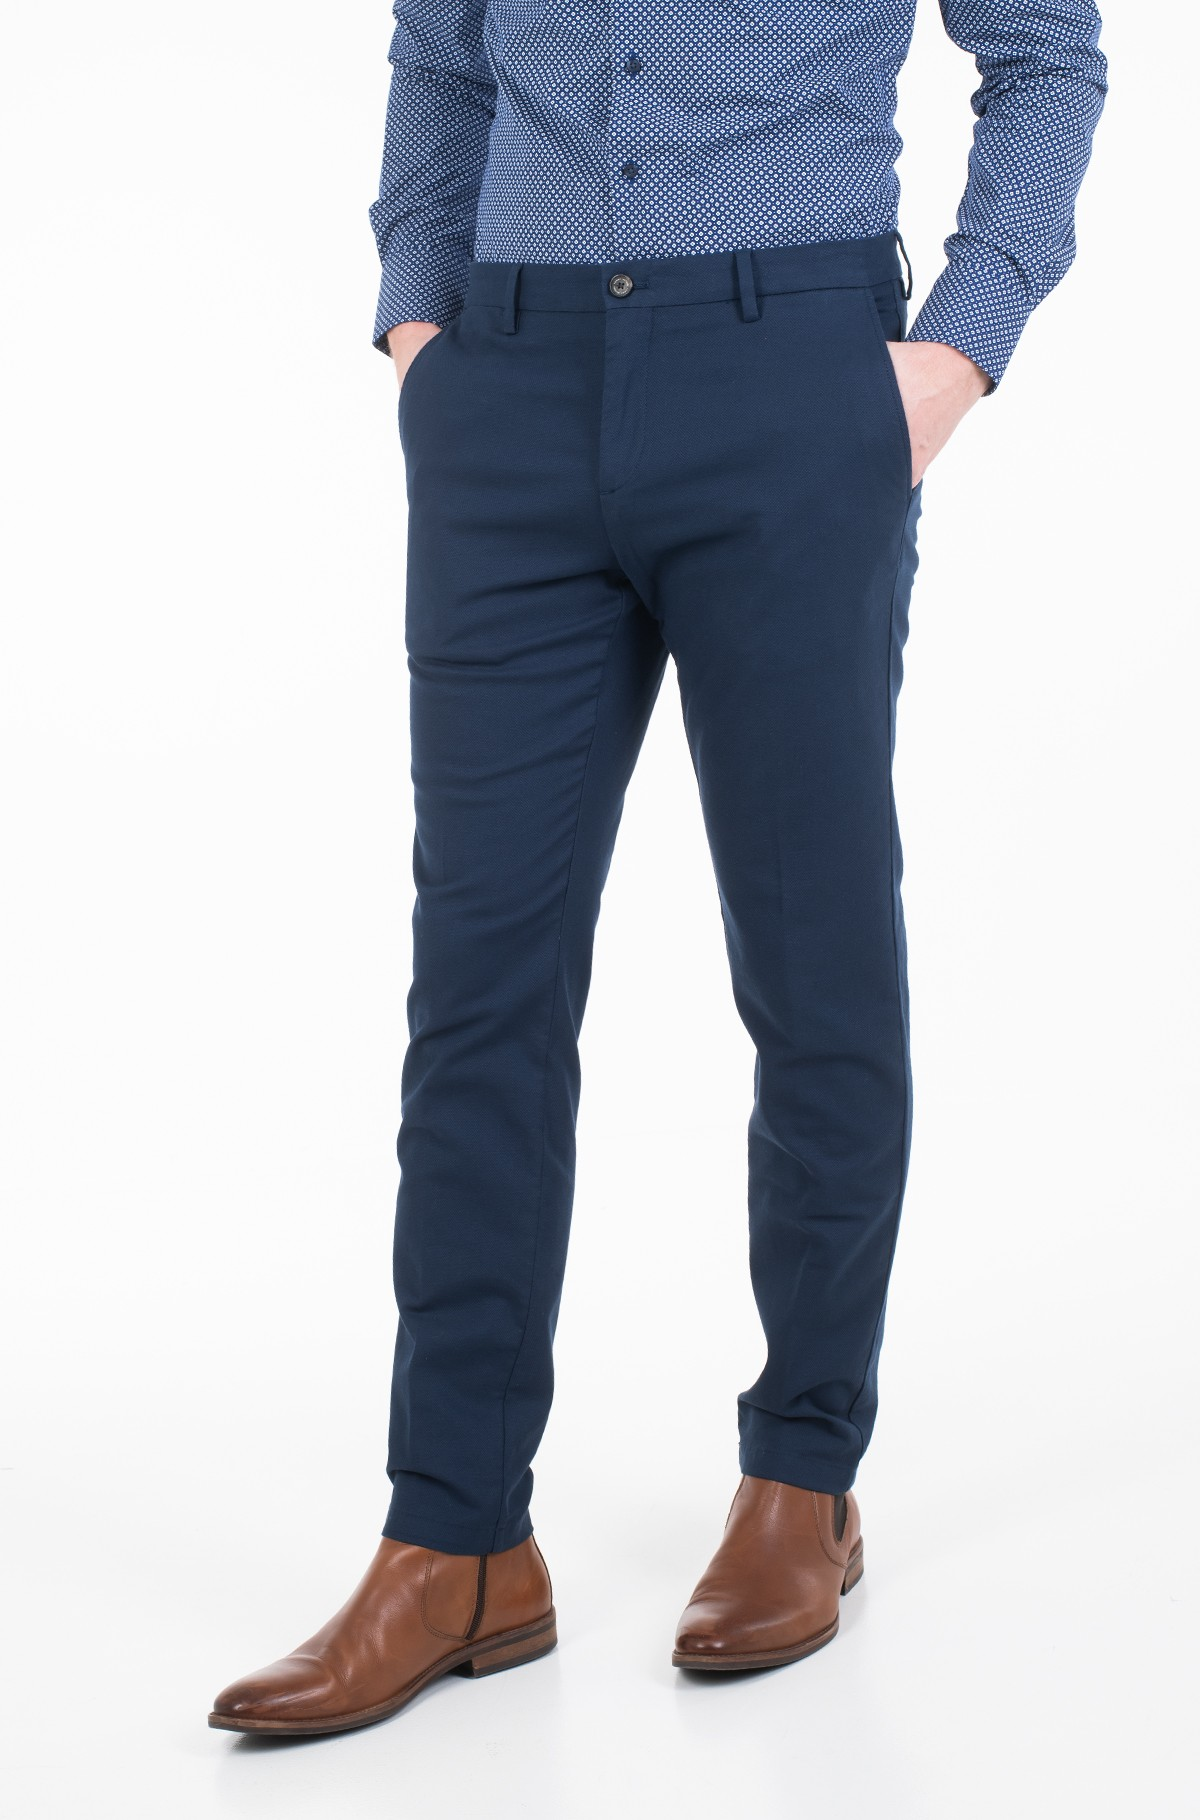 Riidest püksid SLIM FIT STRUCTURED FLEX PANT-full-1